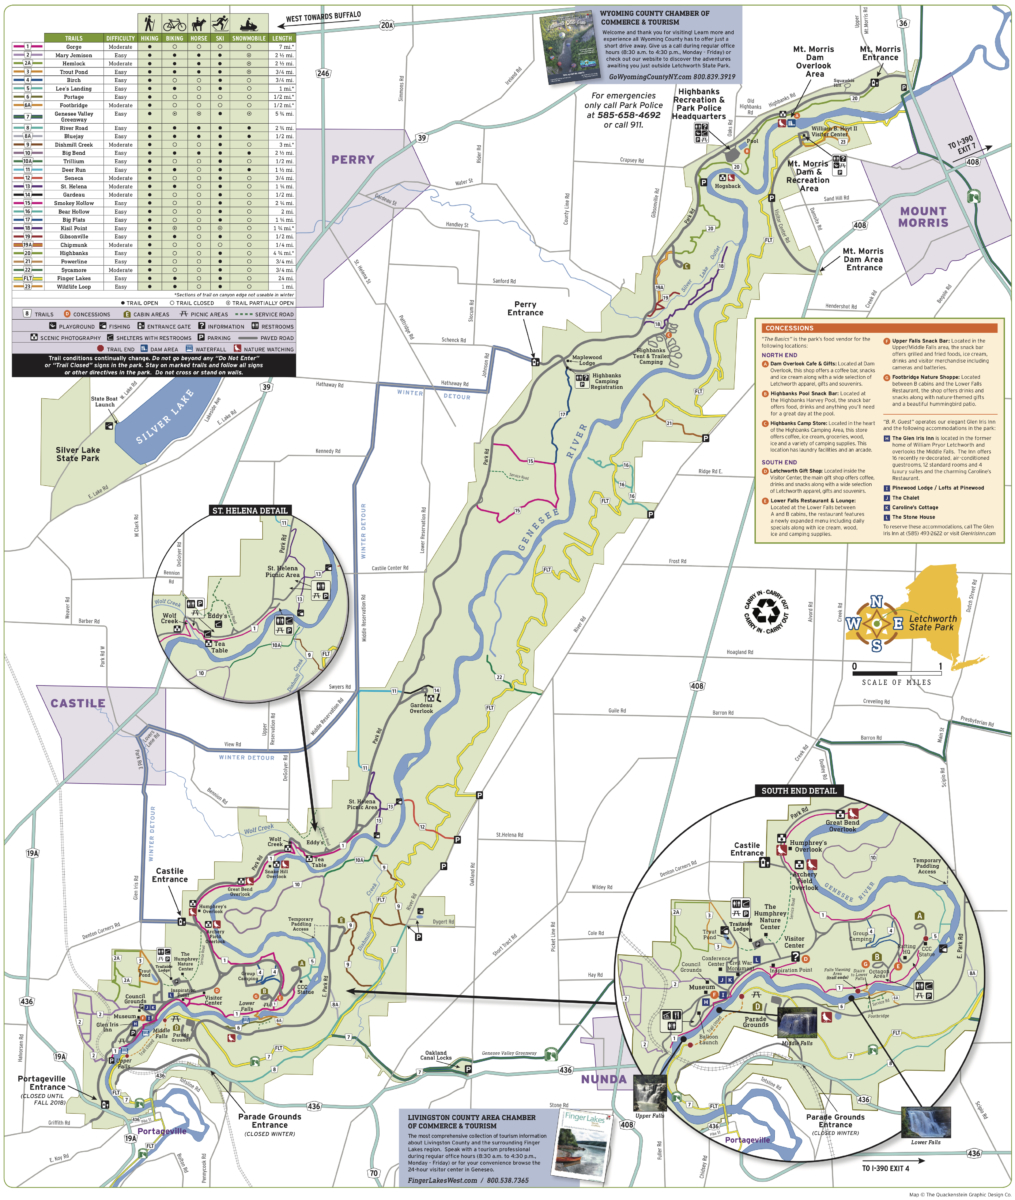 Letchworth State Park Map - Things to Do in Letchworth State Park